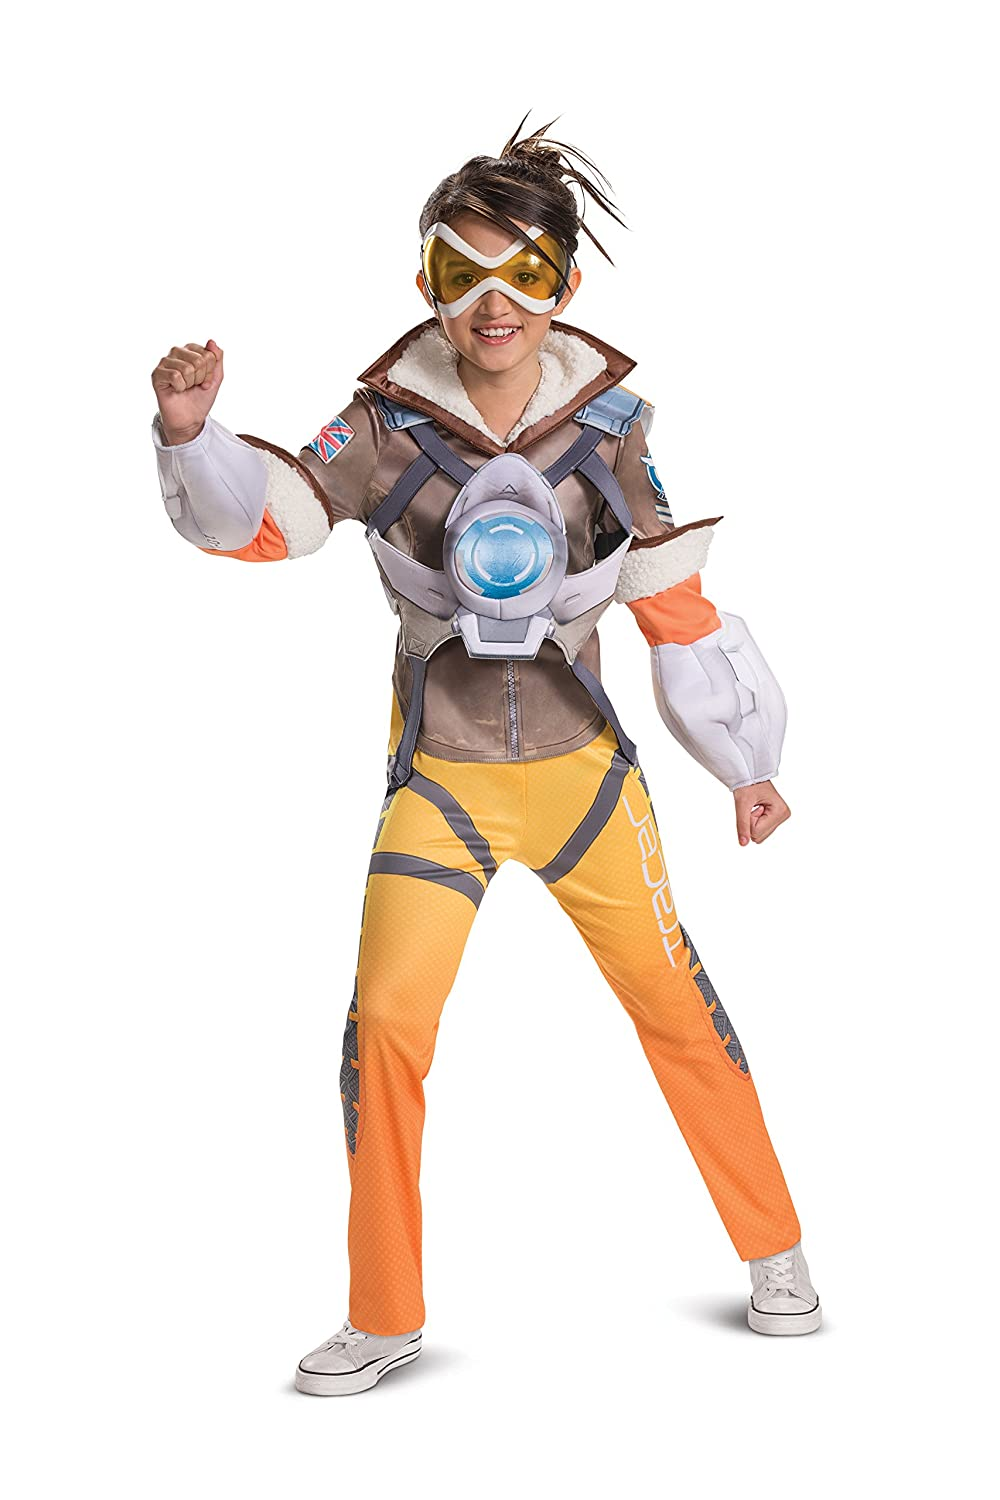 Disguise Overwatch Deluxe Tracer Costume for Kids